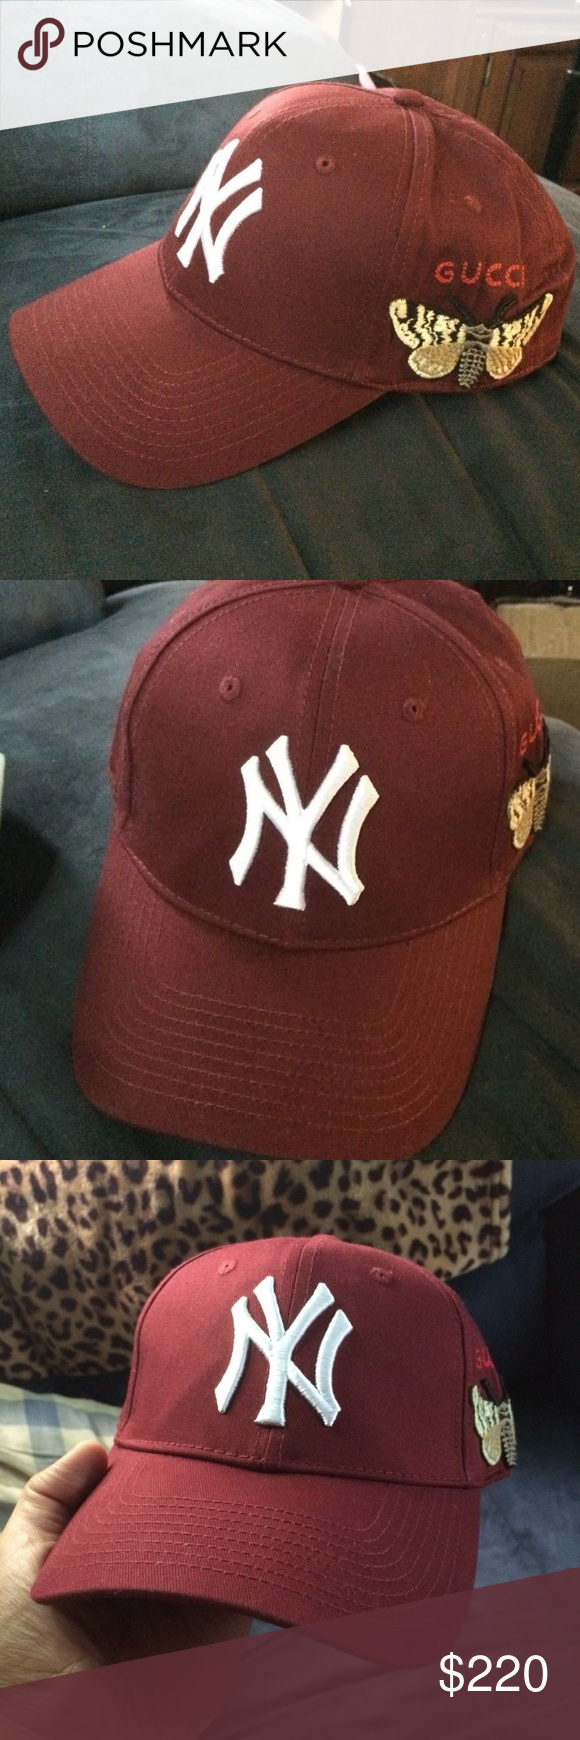 14e2b2f2 New Gucci NY Yankees Butterfly Hat/cap Unisex Brand new never been worn  Burgundy unisex Gucci NY Yankees baseball cap with the butterfly patch.